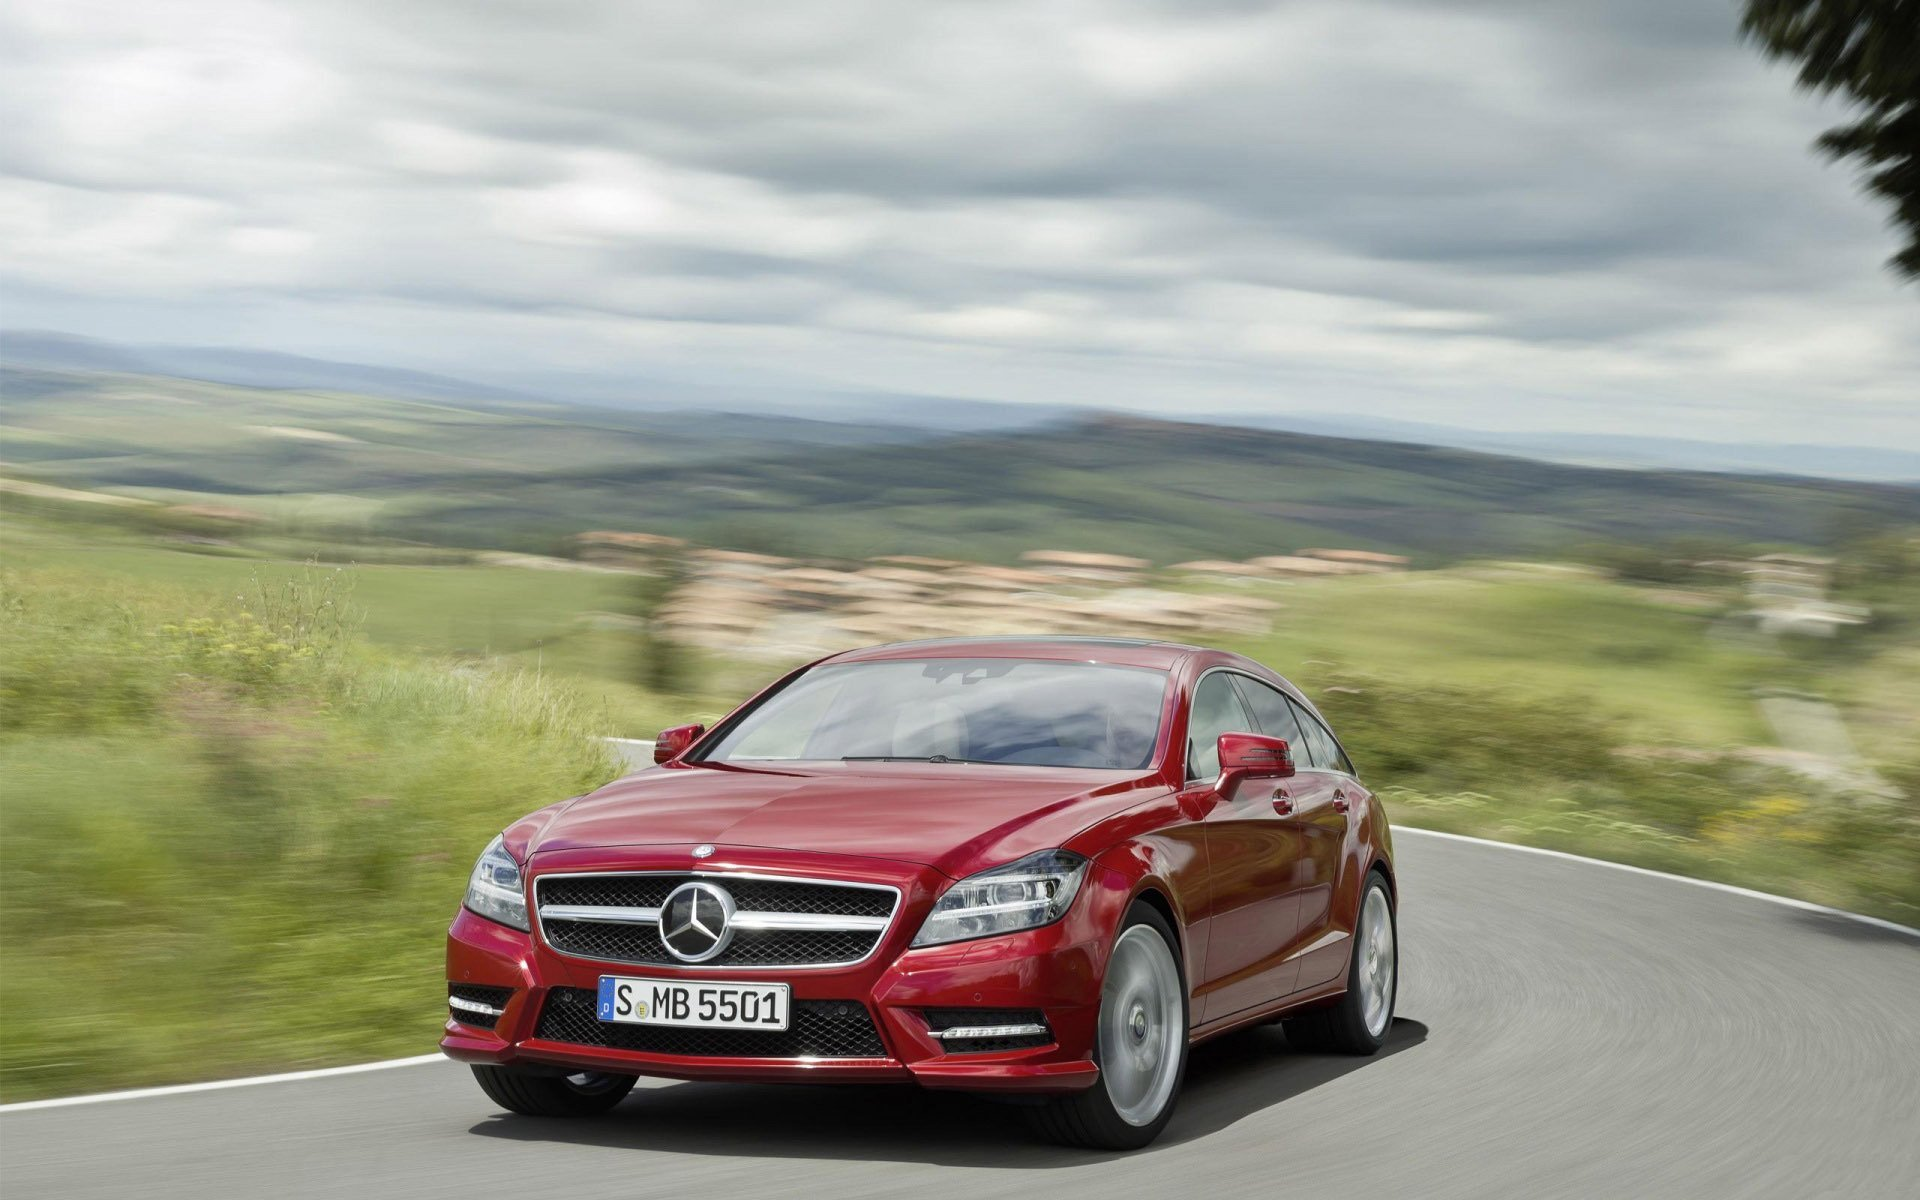 Best Mercedes-Benz CLS-Class wallpaper ID:321922 for High Resolution hd 1920x1200 PC